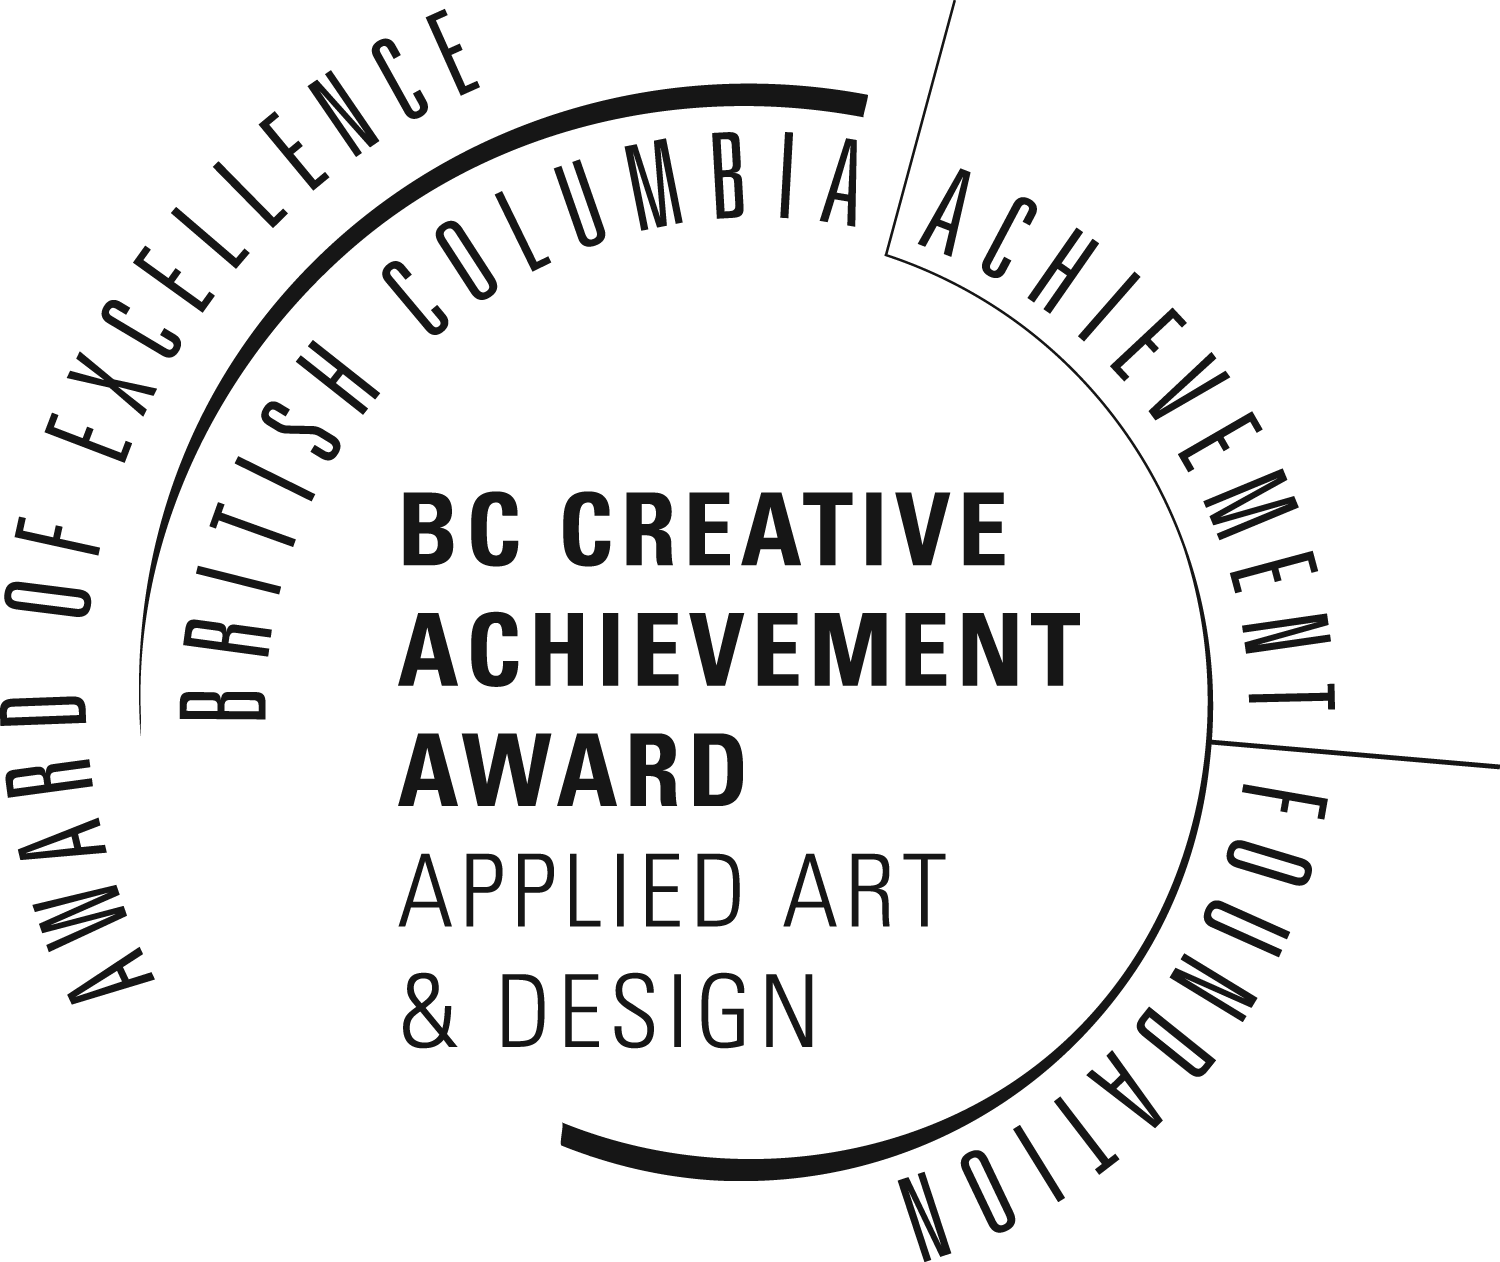 BCAF_SEAL_APPLIED_ART.png